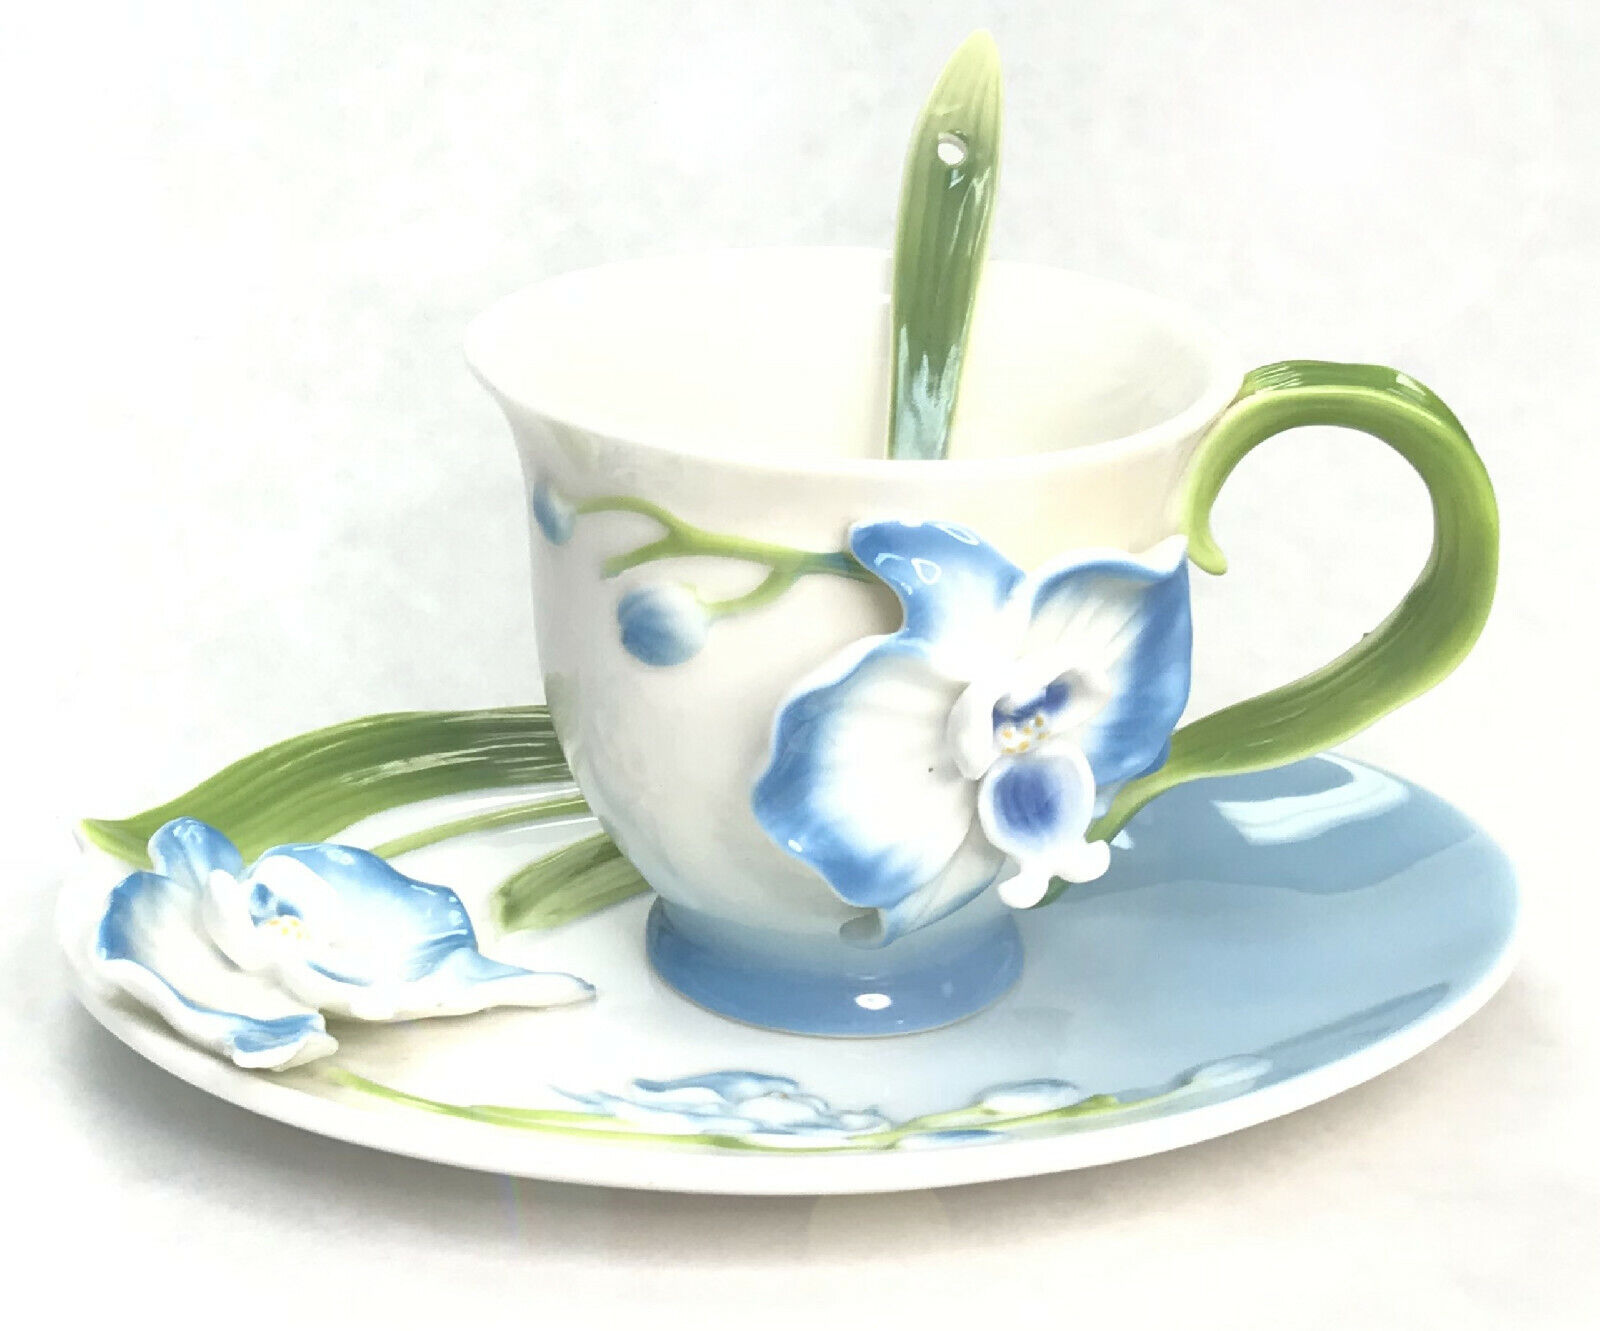 Floral Porcelain Coffee Tea Cup Gift Set, Saucer, Cup, Spoon